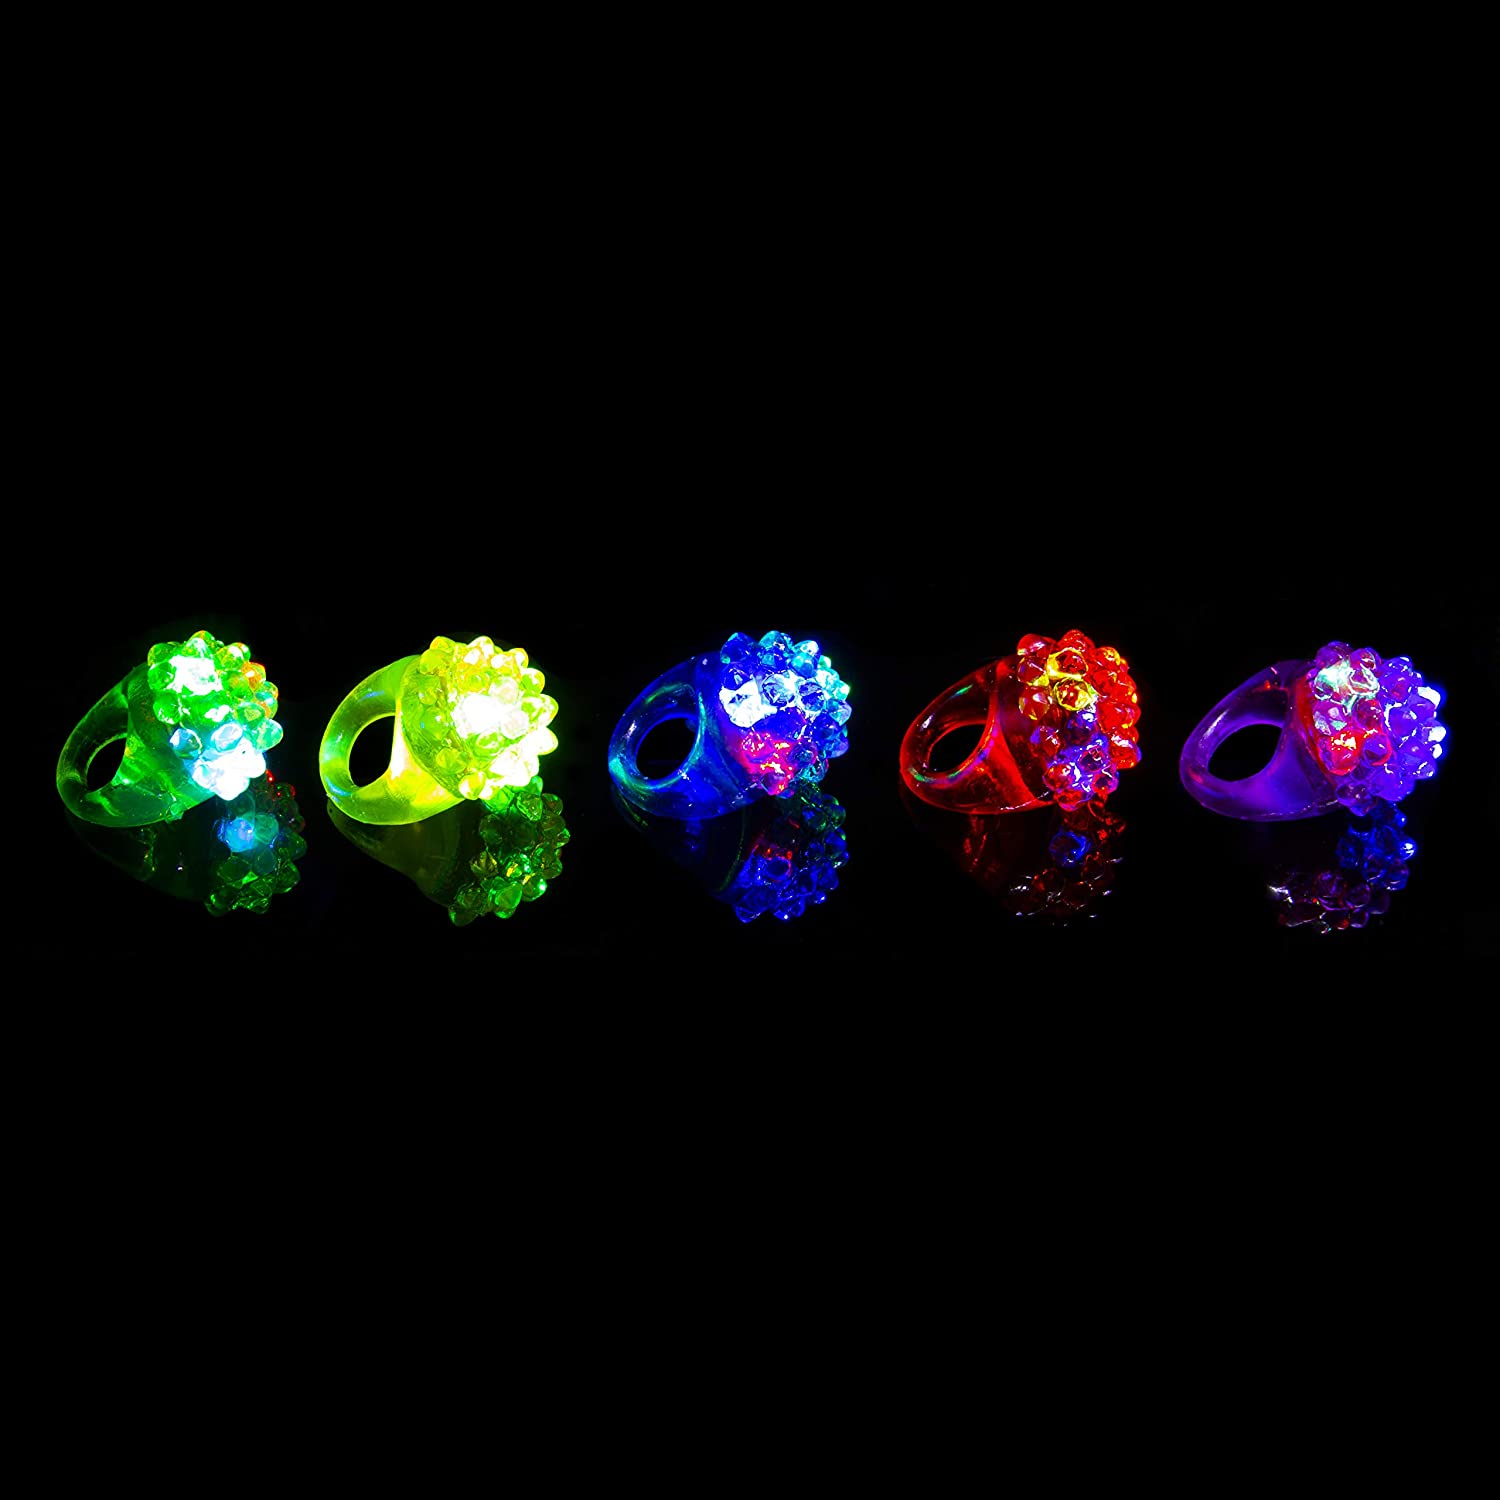 Pack of 2 Flashing Led Multi Coloured Bumpy Jelly Style Rings for Parties Party Favor Costumes Raves Gift Bags Light Up Finger Toy Glowing Adult Child Fun